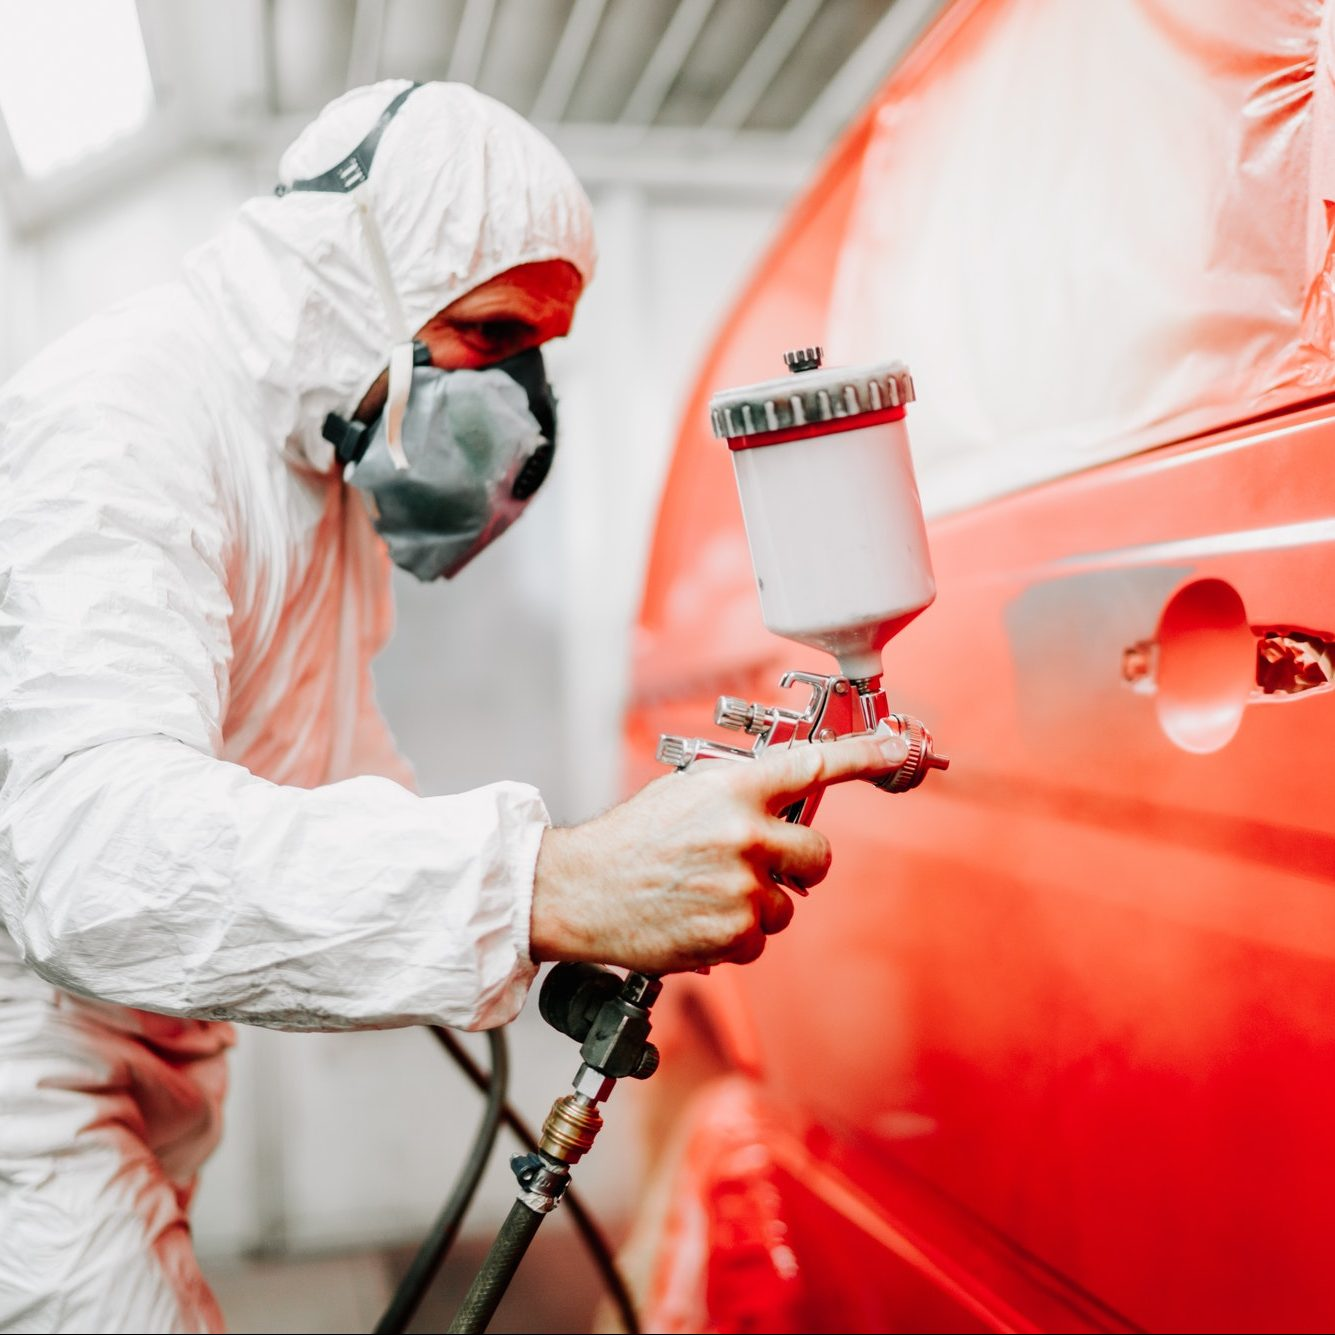 Close up details of mechanic worker, painting a red car